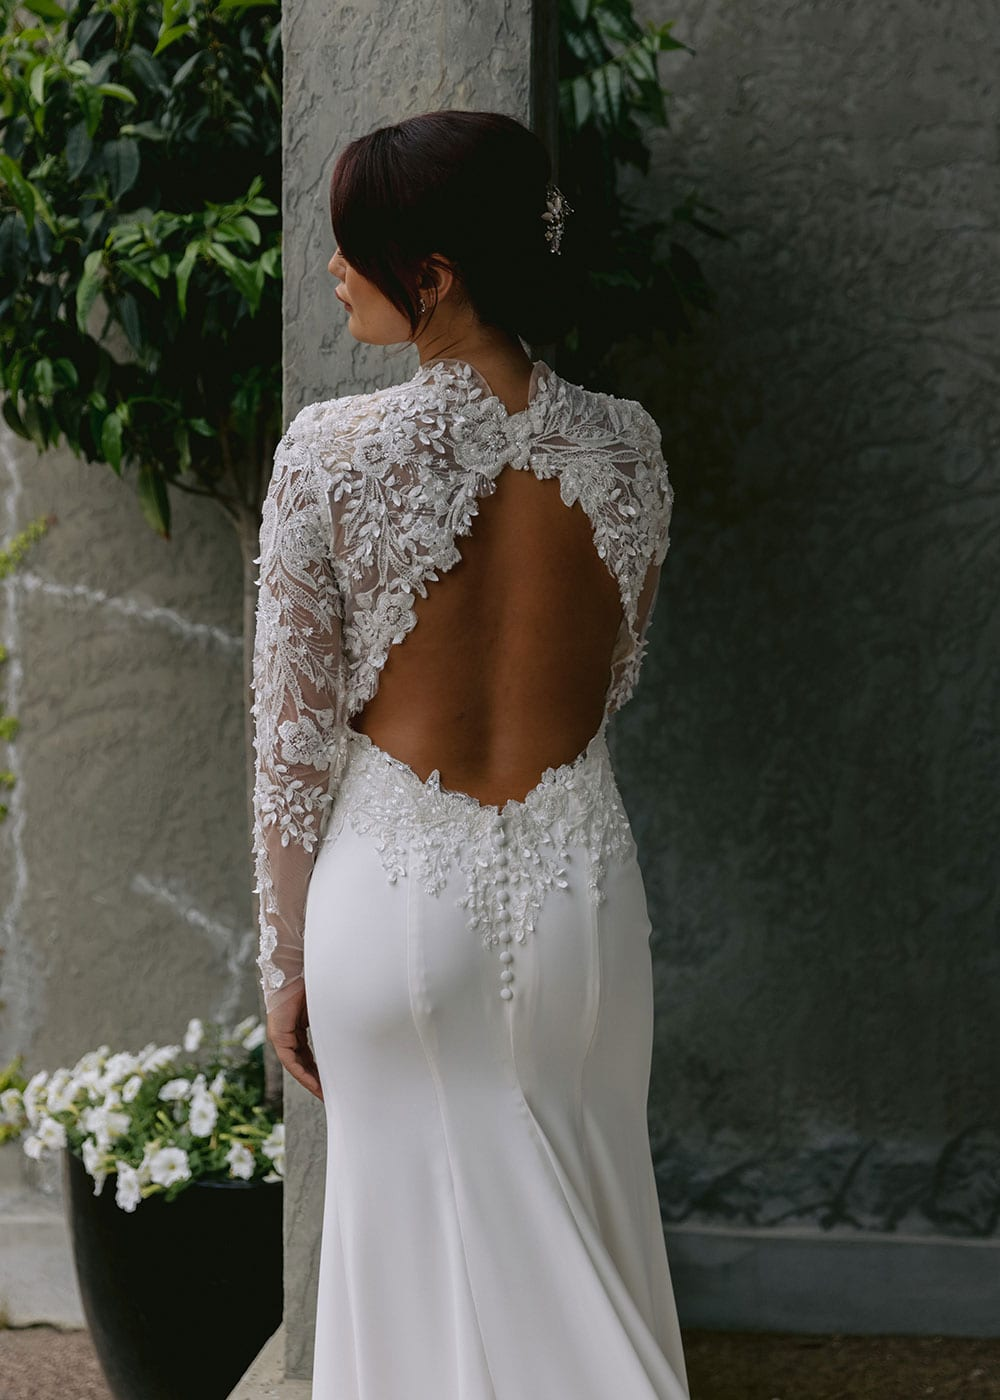 Moana Wedding gown from Vinka Design - Spectacular wedding dress perfect for the modern bride who still wants a classic spark! 3D lace embroidery complemented by a high neckline, fitted sleeves, and stunning low back into a flare train. Model wearing gown showing open back and lace detail.